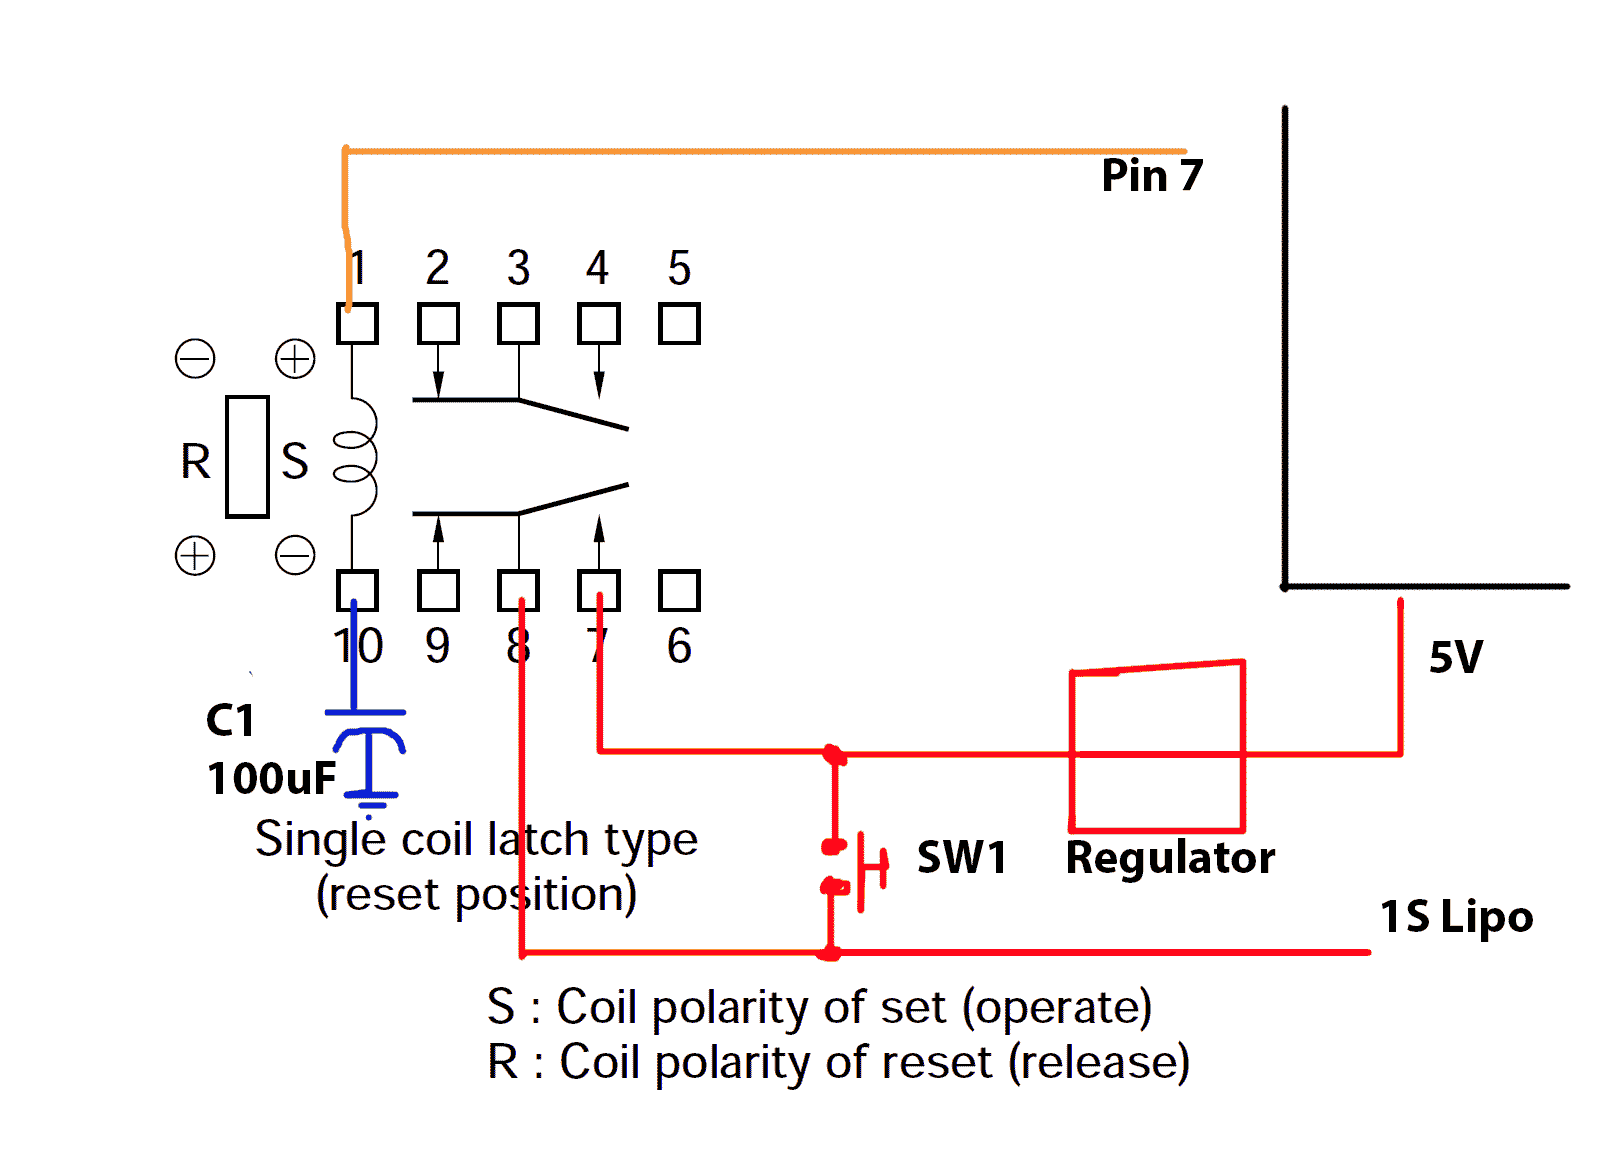 Reset A Single Coil Latching Relay On Powerup How - Basic of relay pdf